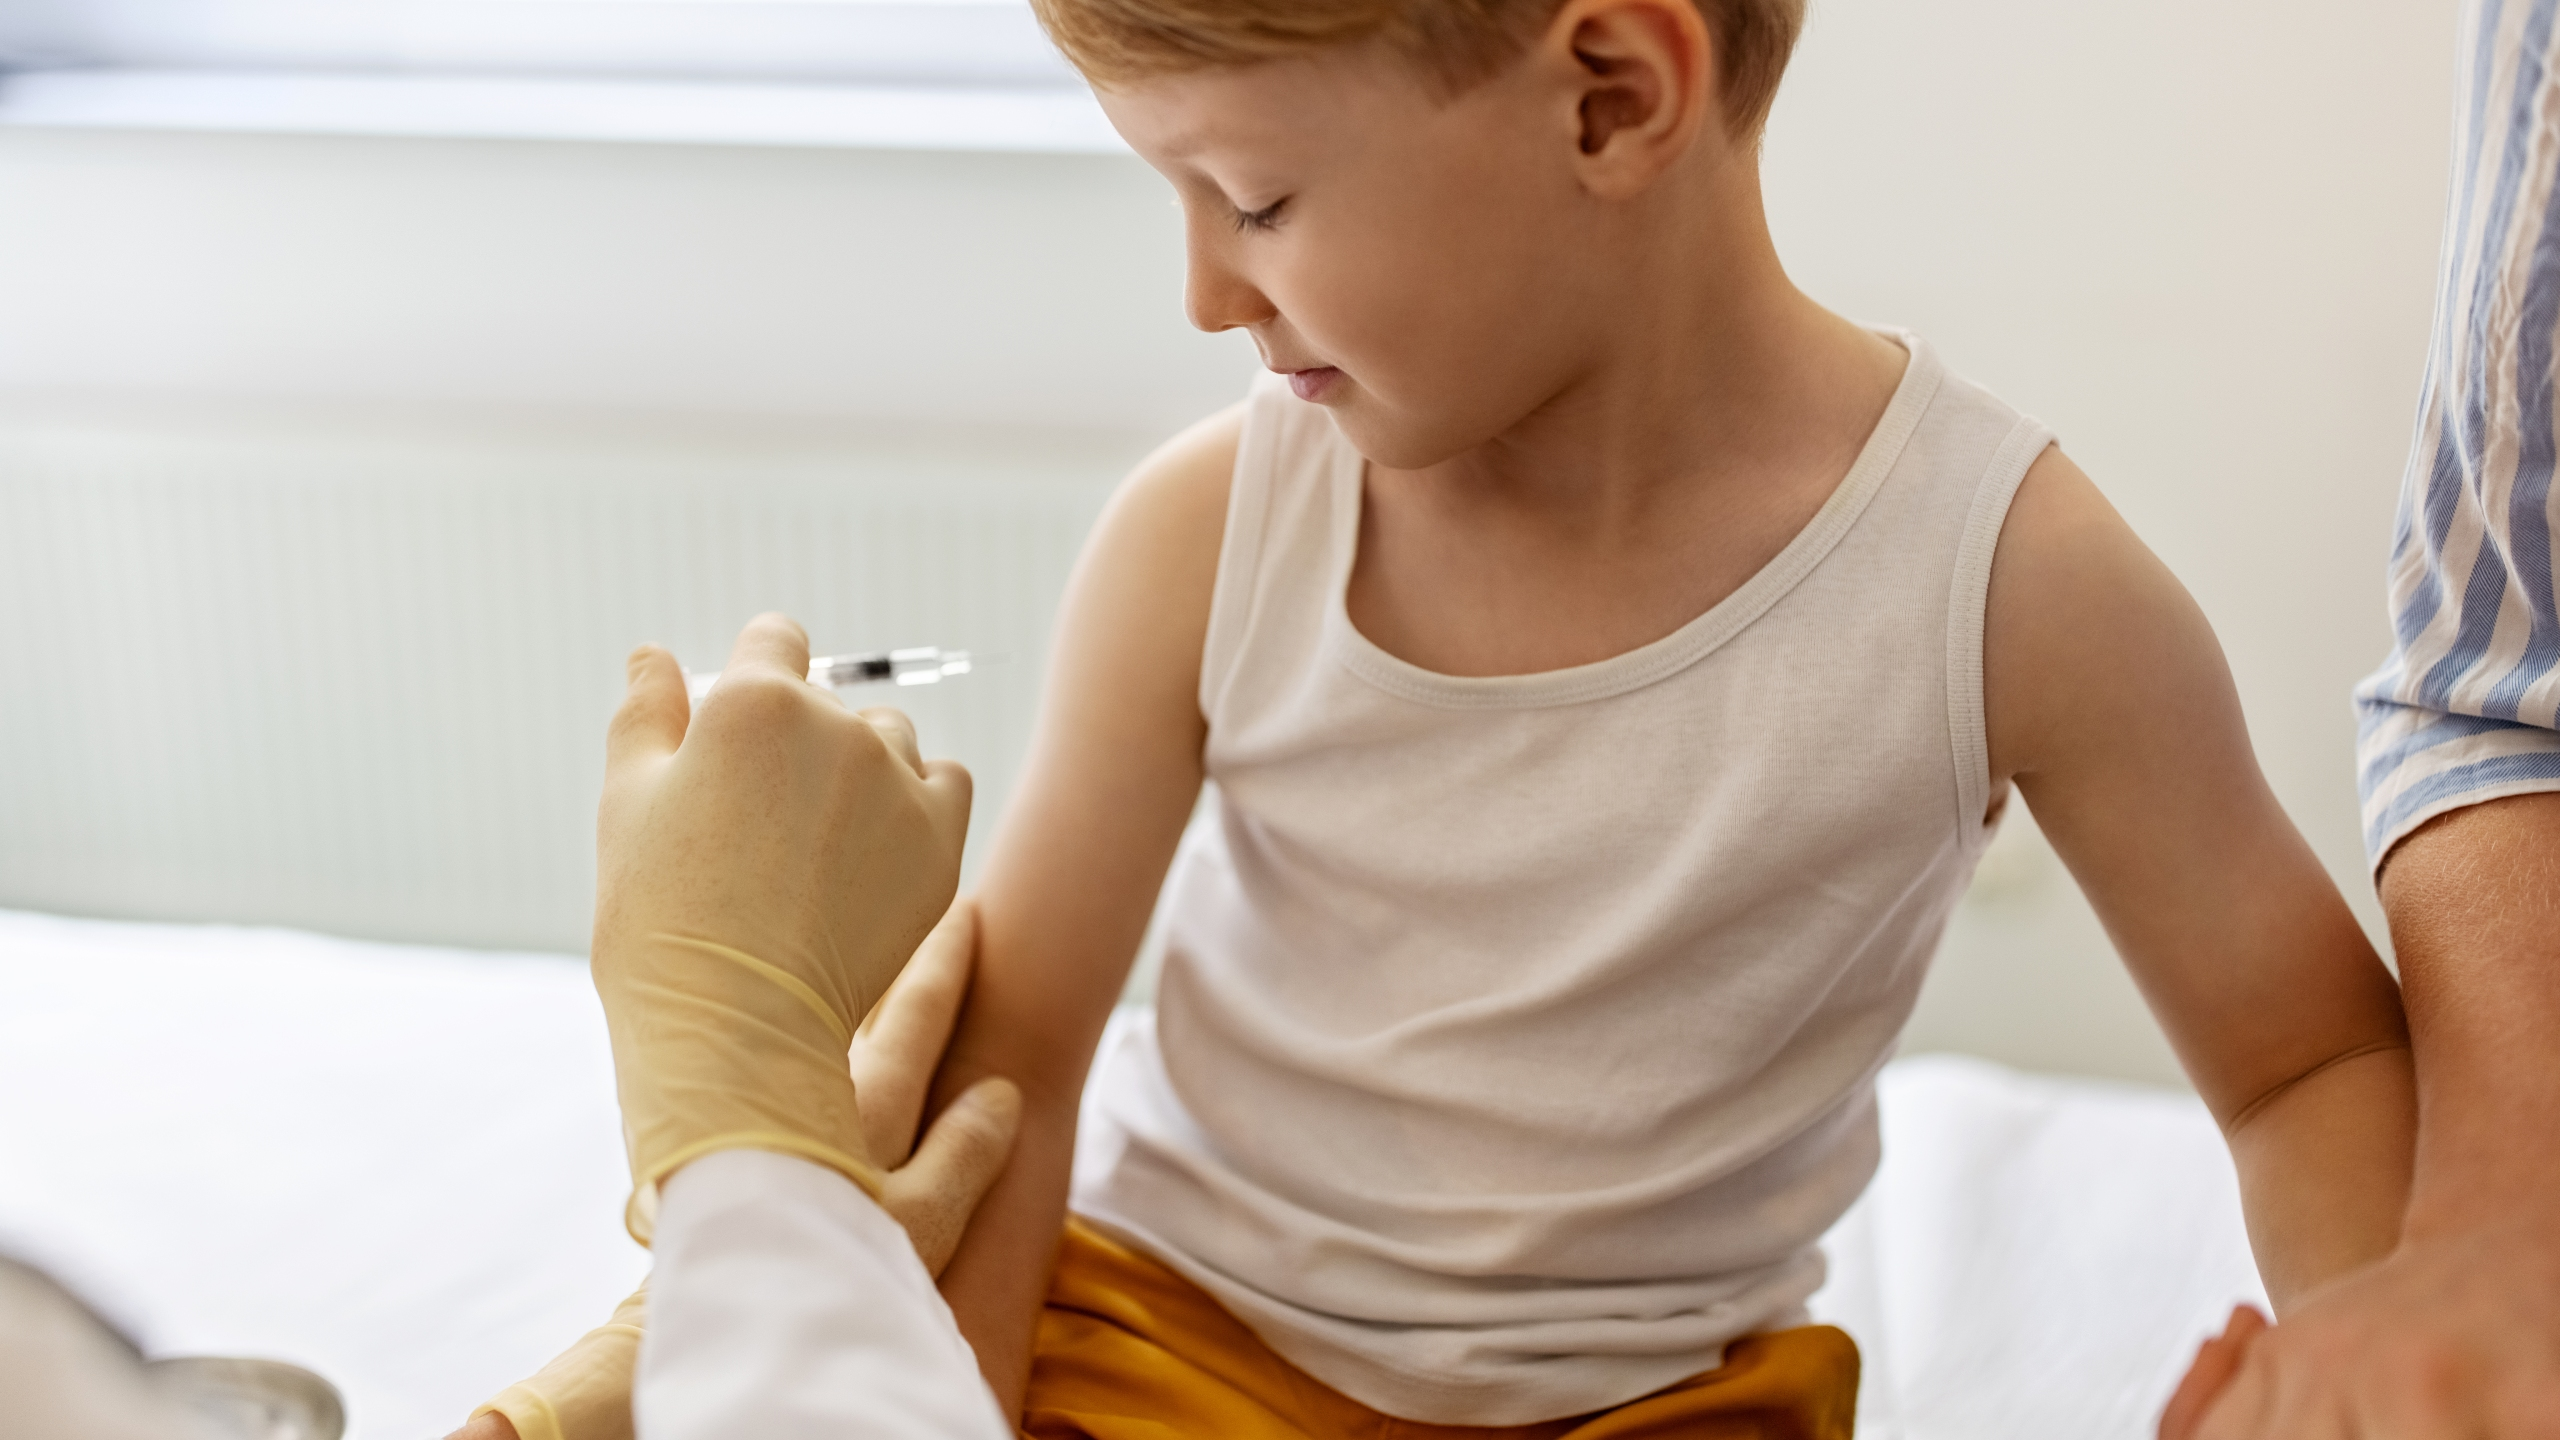 Little boy getting vaccine from a pediatrician on his arm. Boy getting flu shot at doctor's clinic.